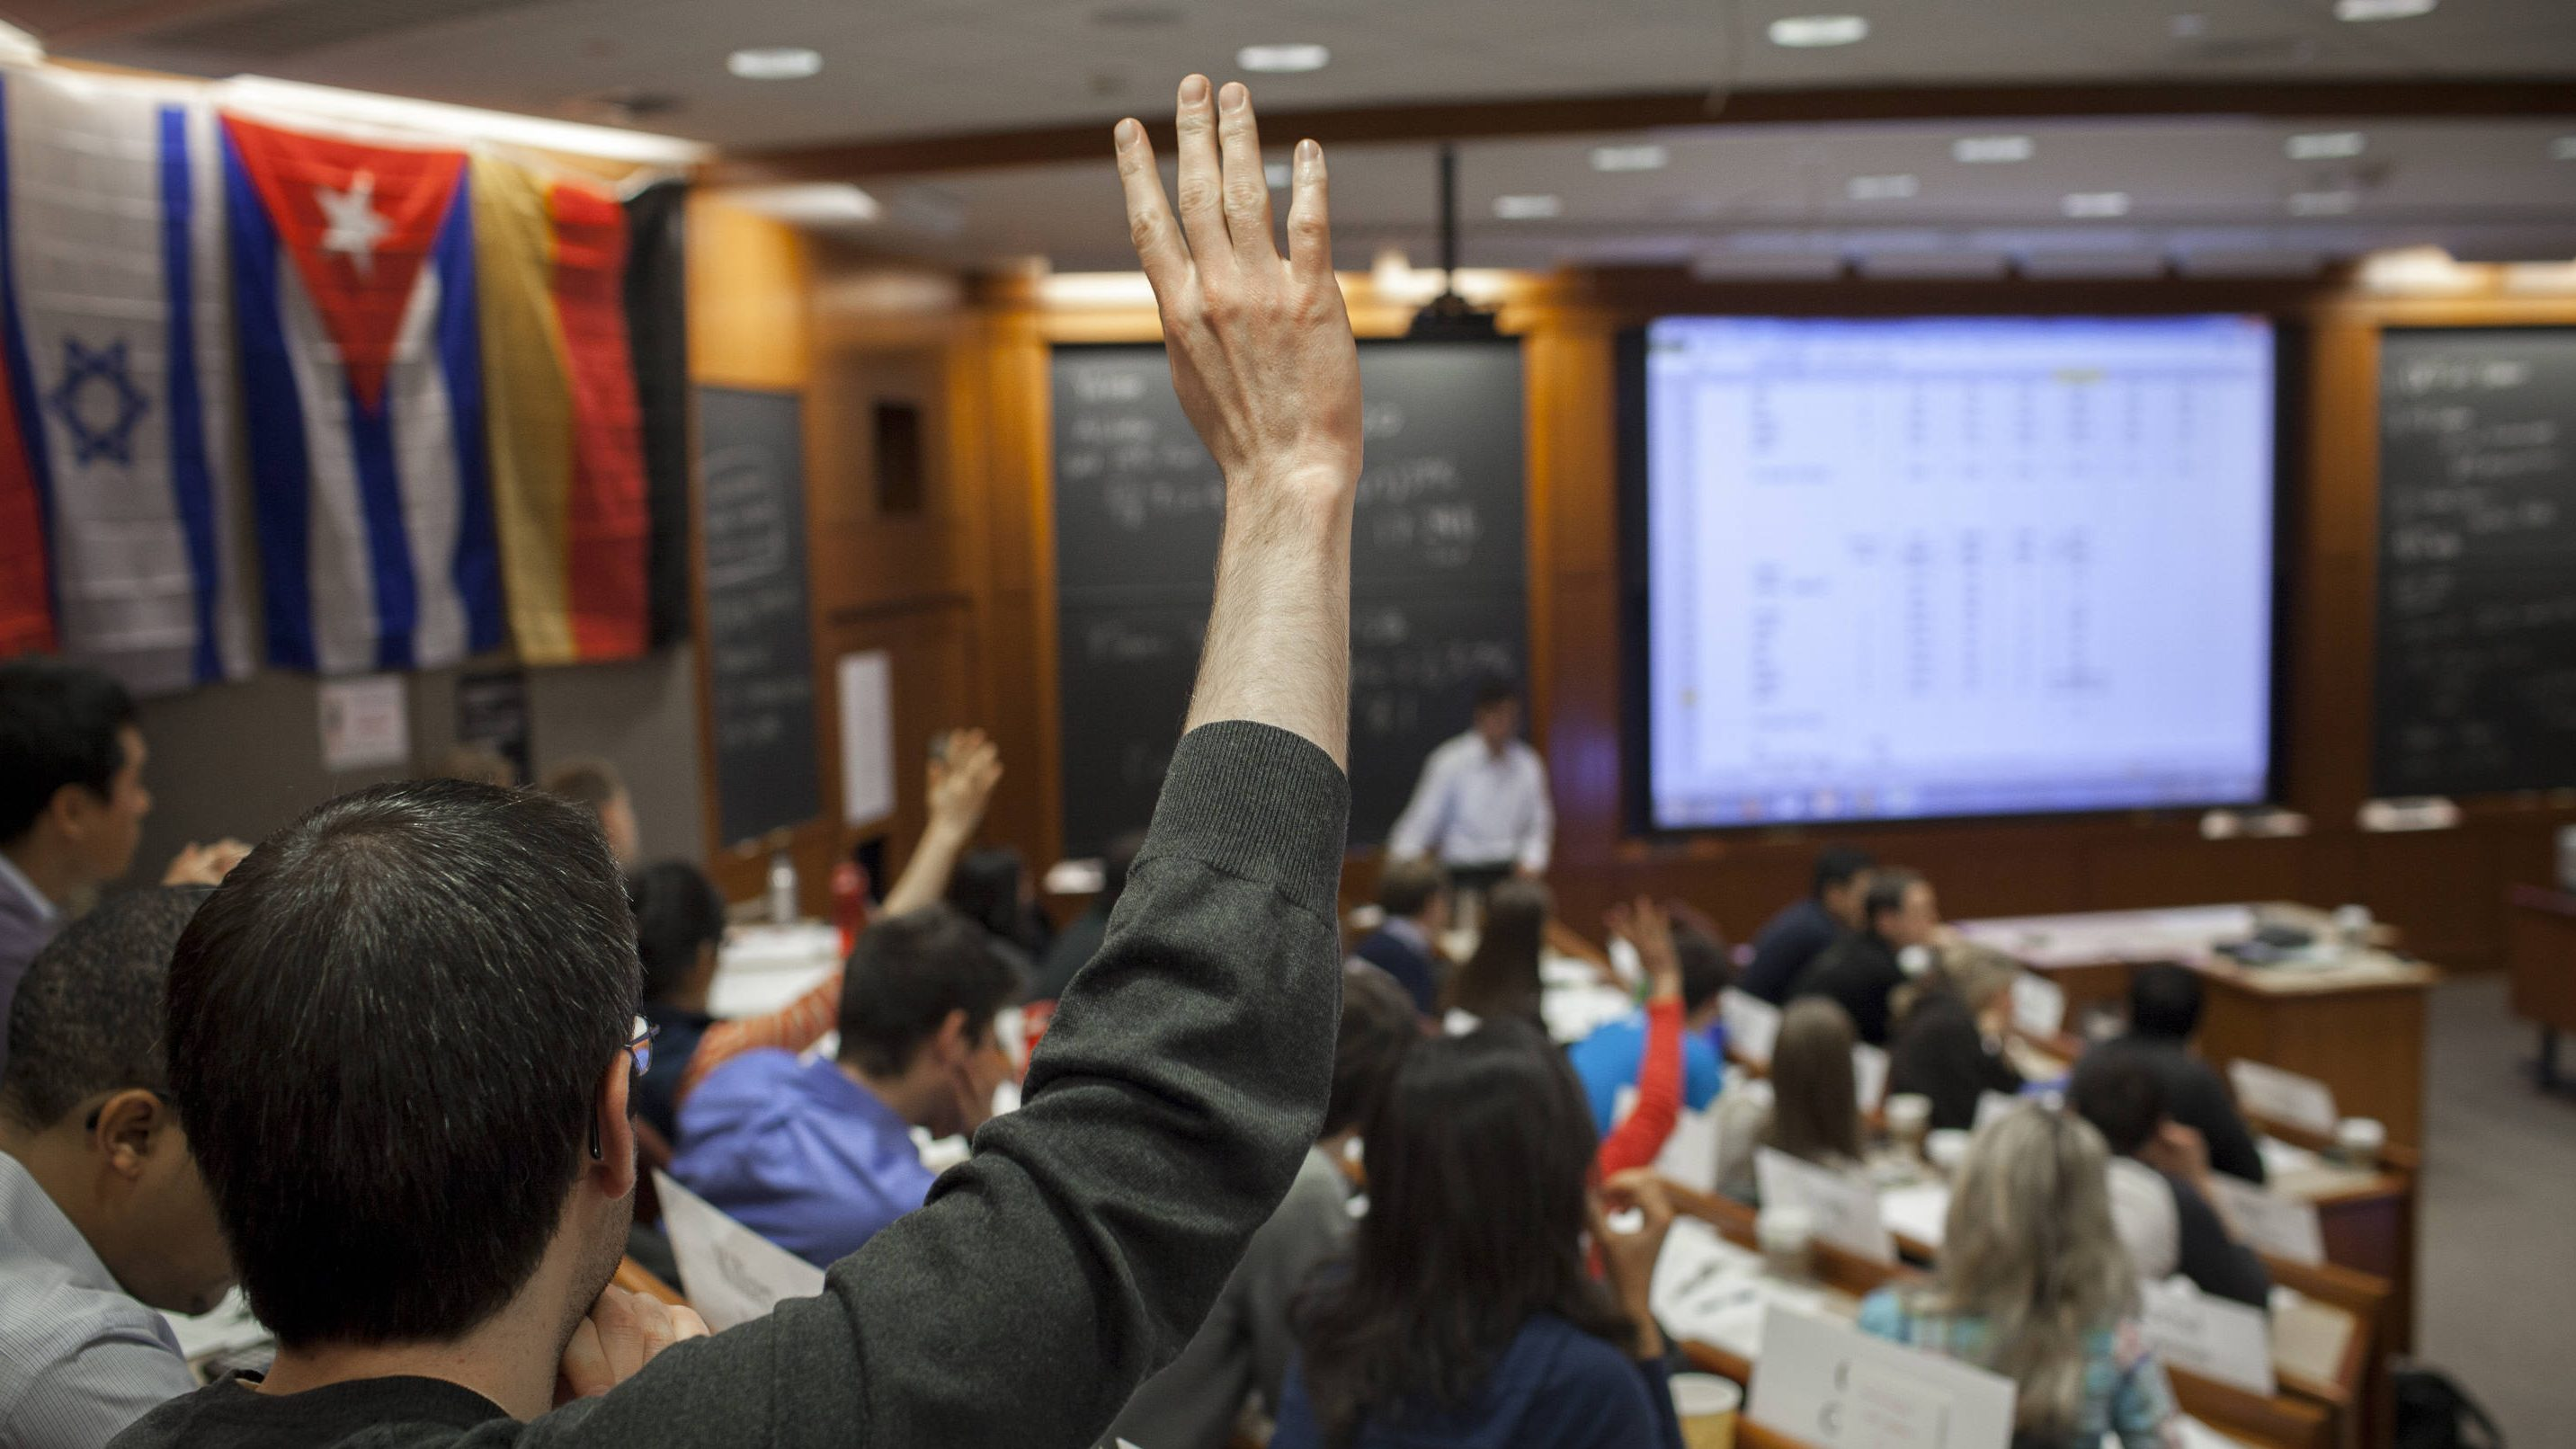 An HBS student raises his hand